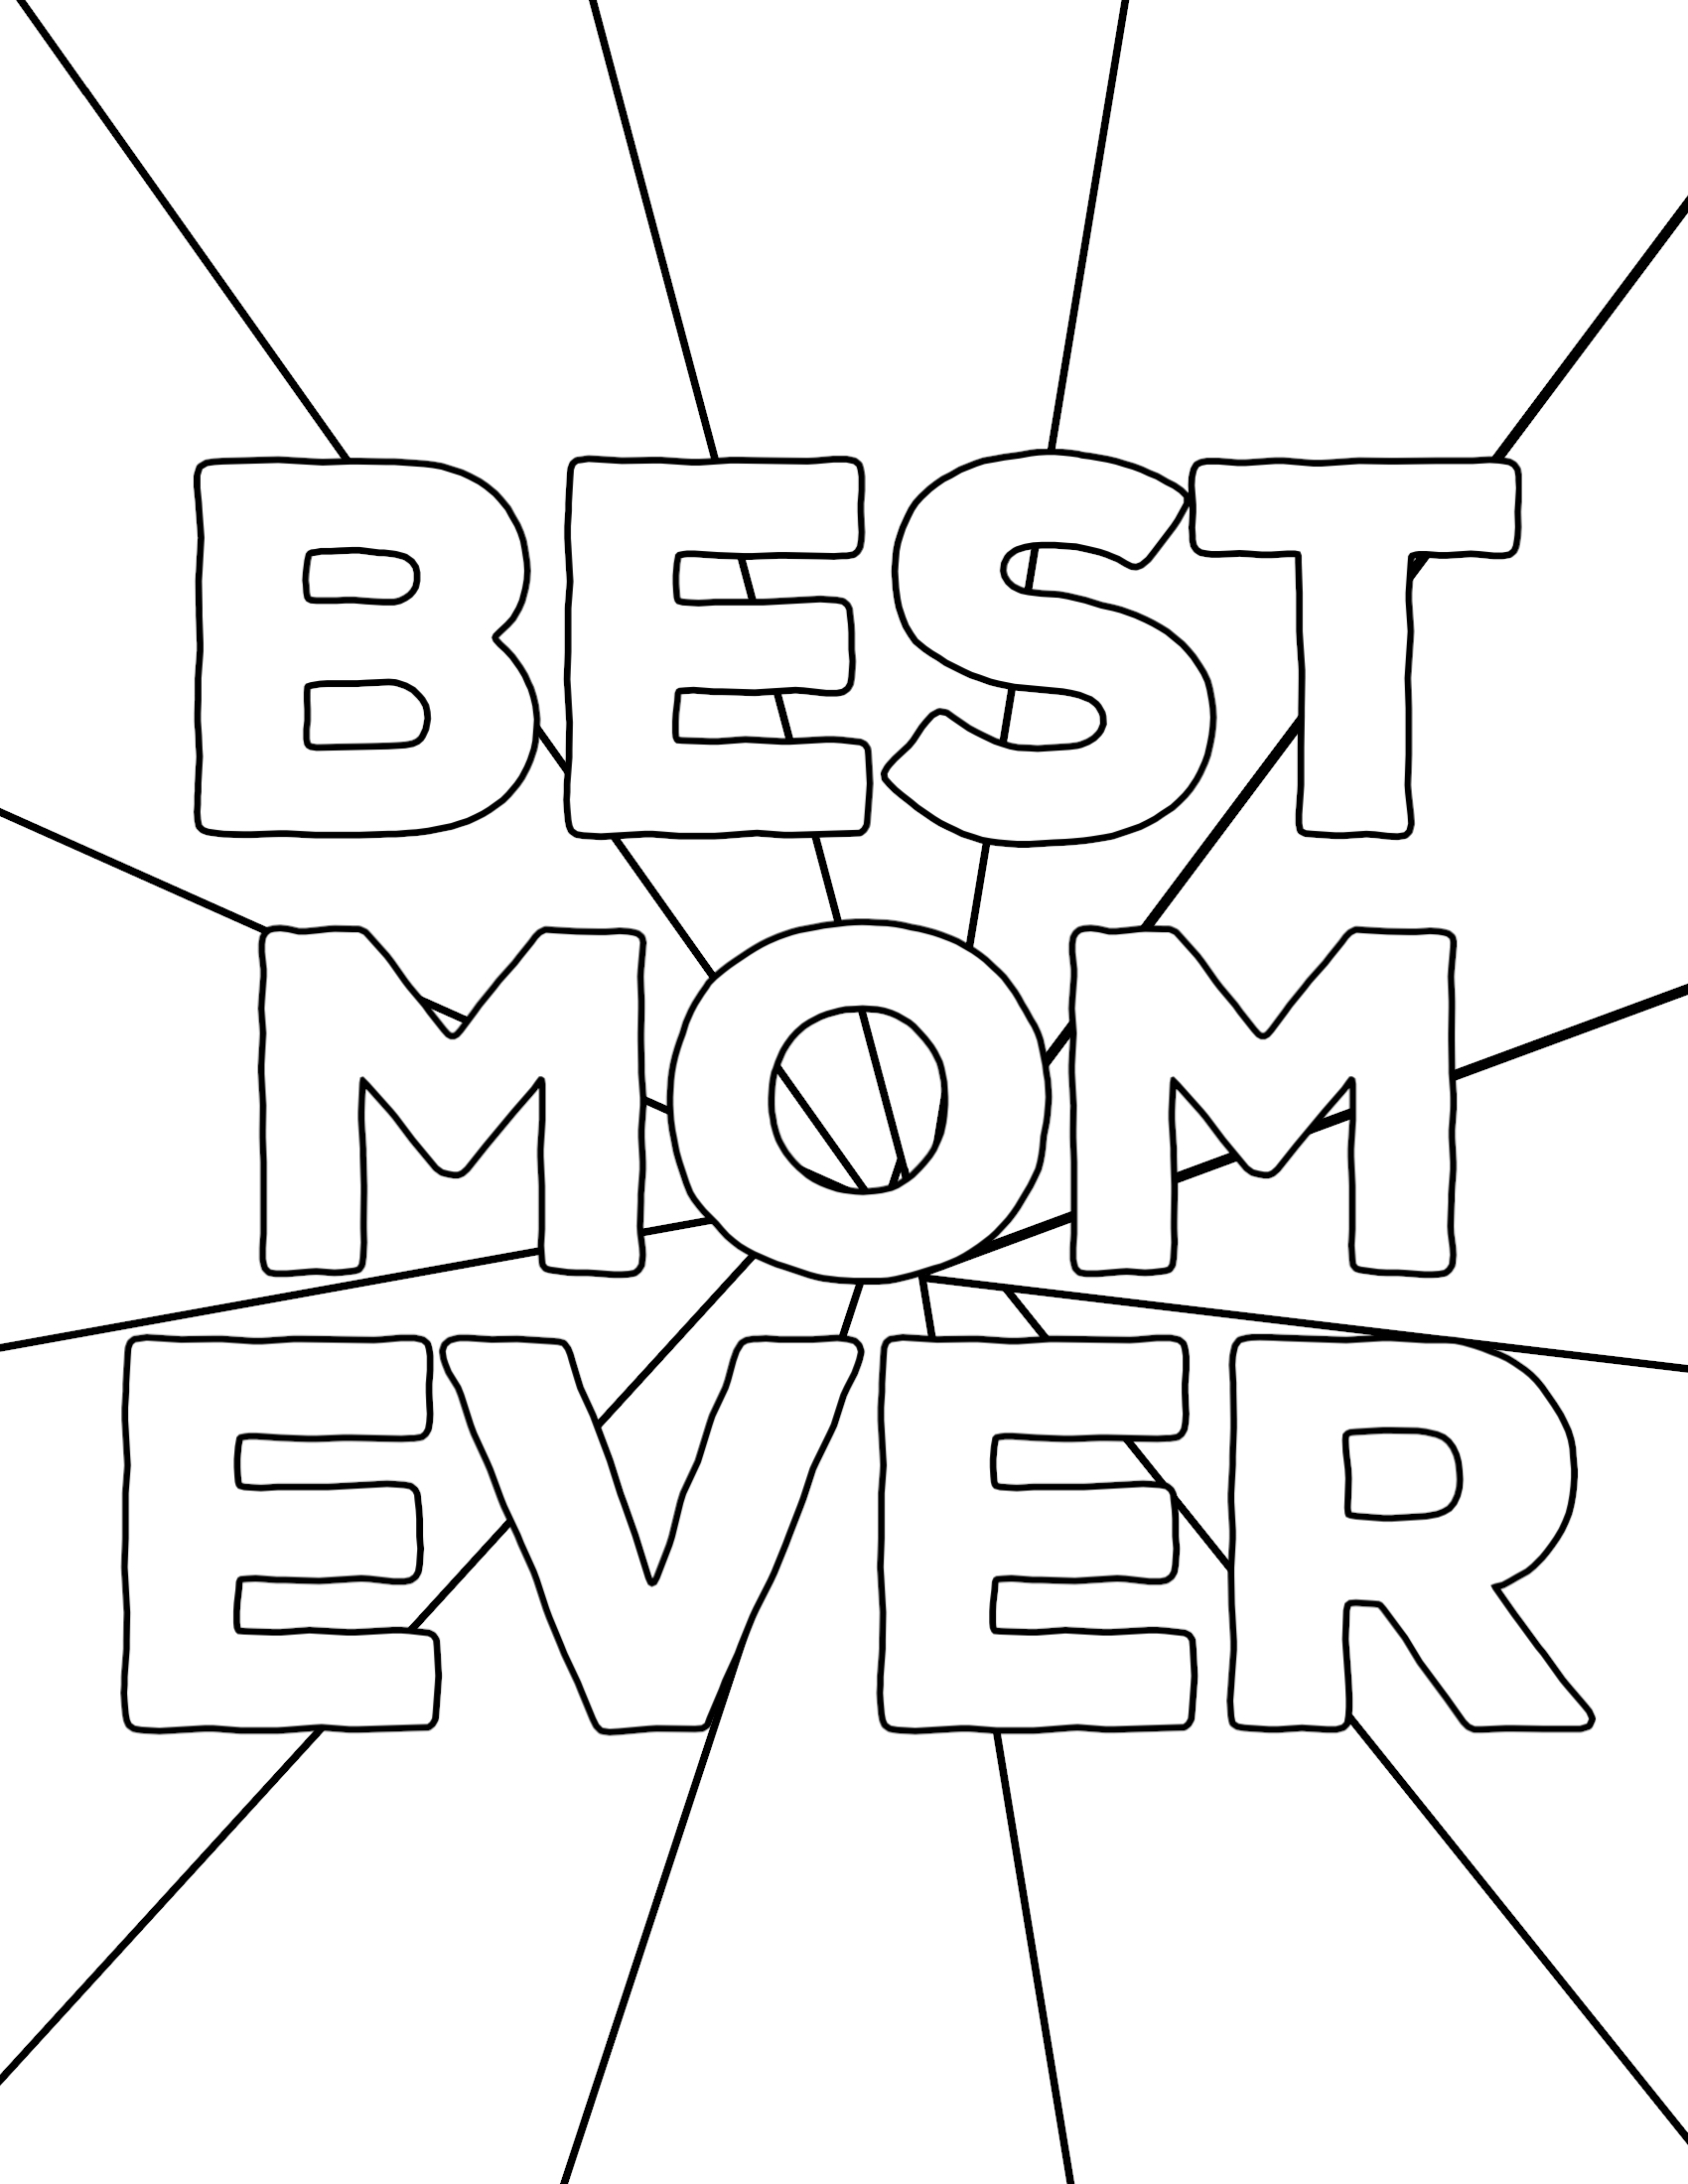 Free Printable Mother's Day Coloring Pages - Paper Trail ...